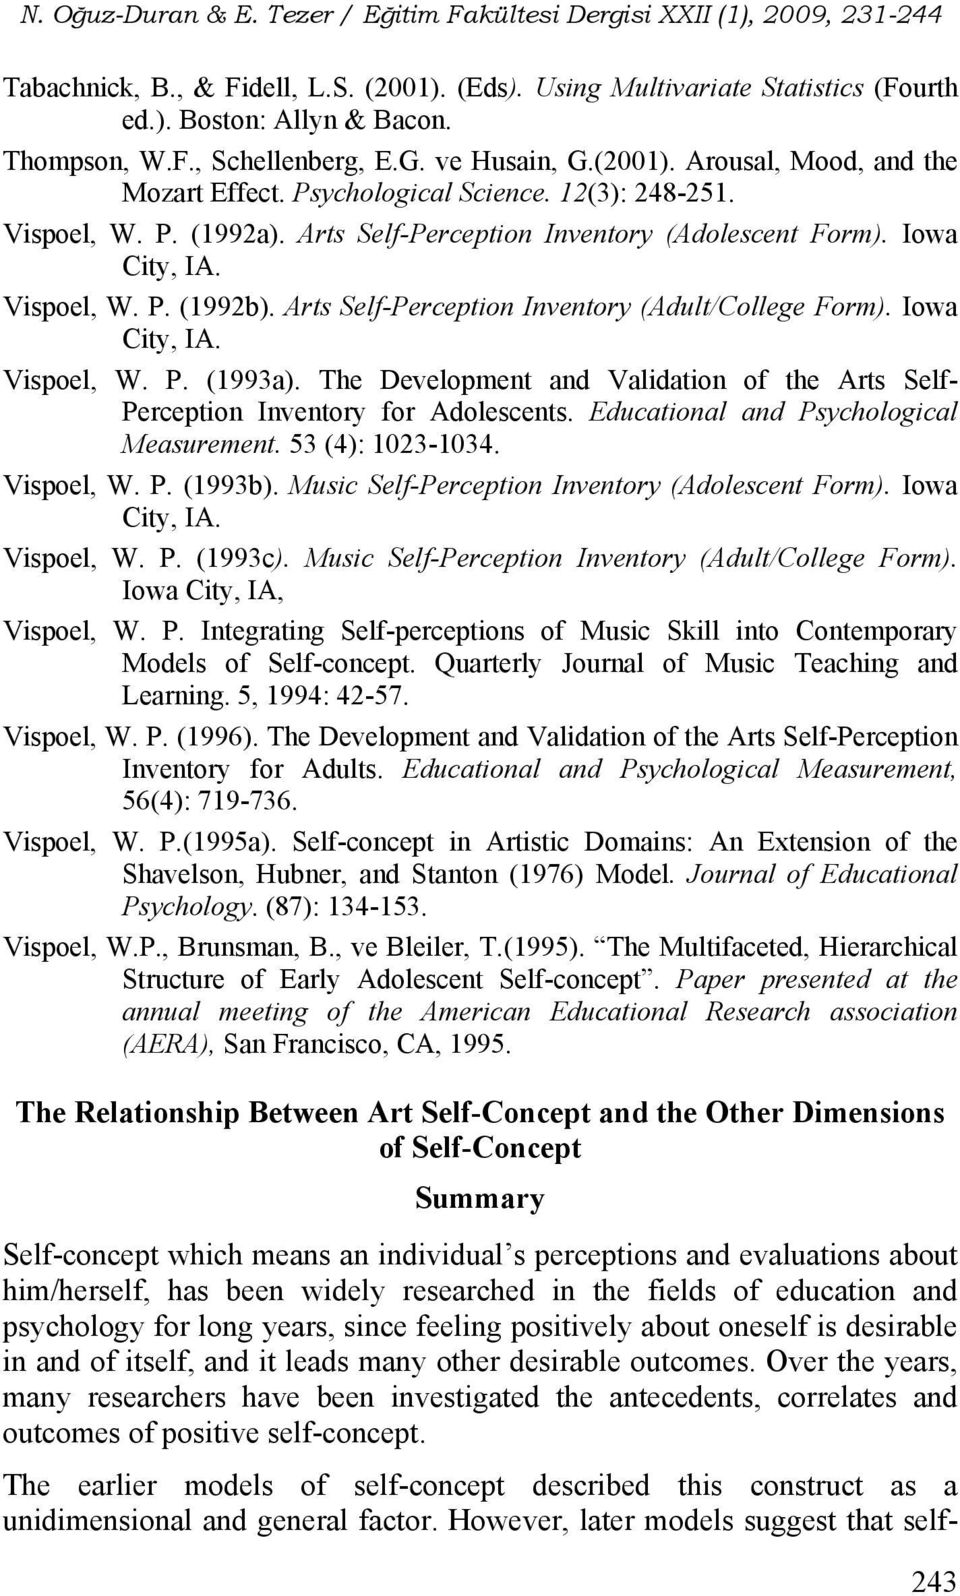 Arts Self-Perception Inventory (Adult/College Form). Iowa City, IA. Vispoel, W. P. (1993a). The Development and Validation of the Arts Self- Perception Inventory for Adolescents.